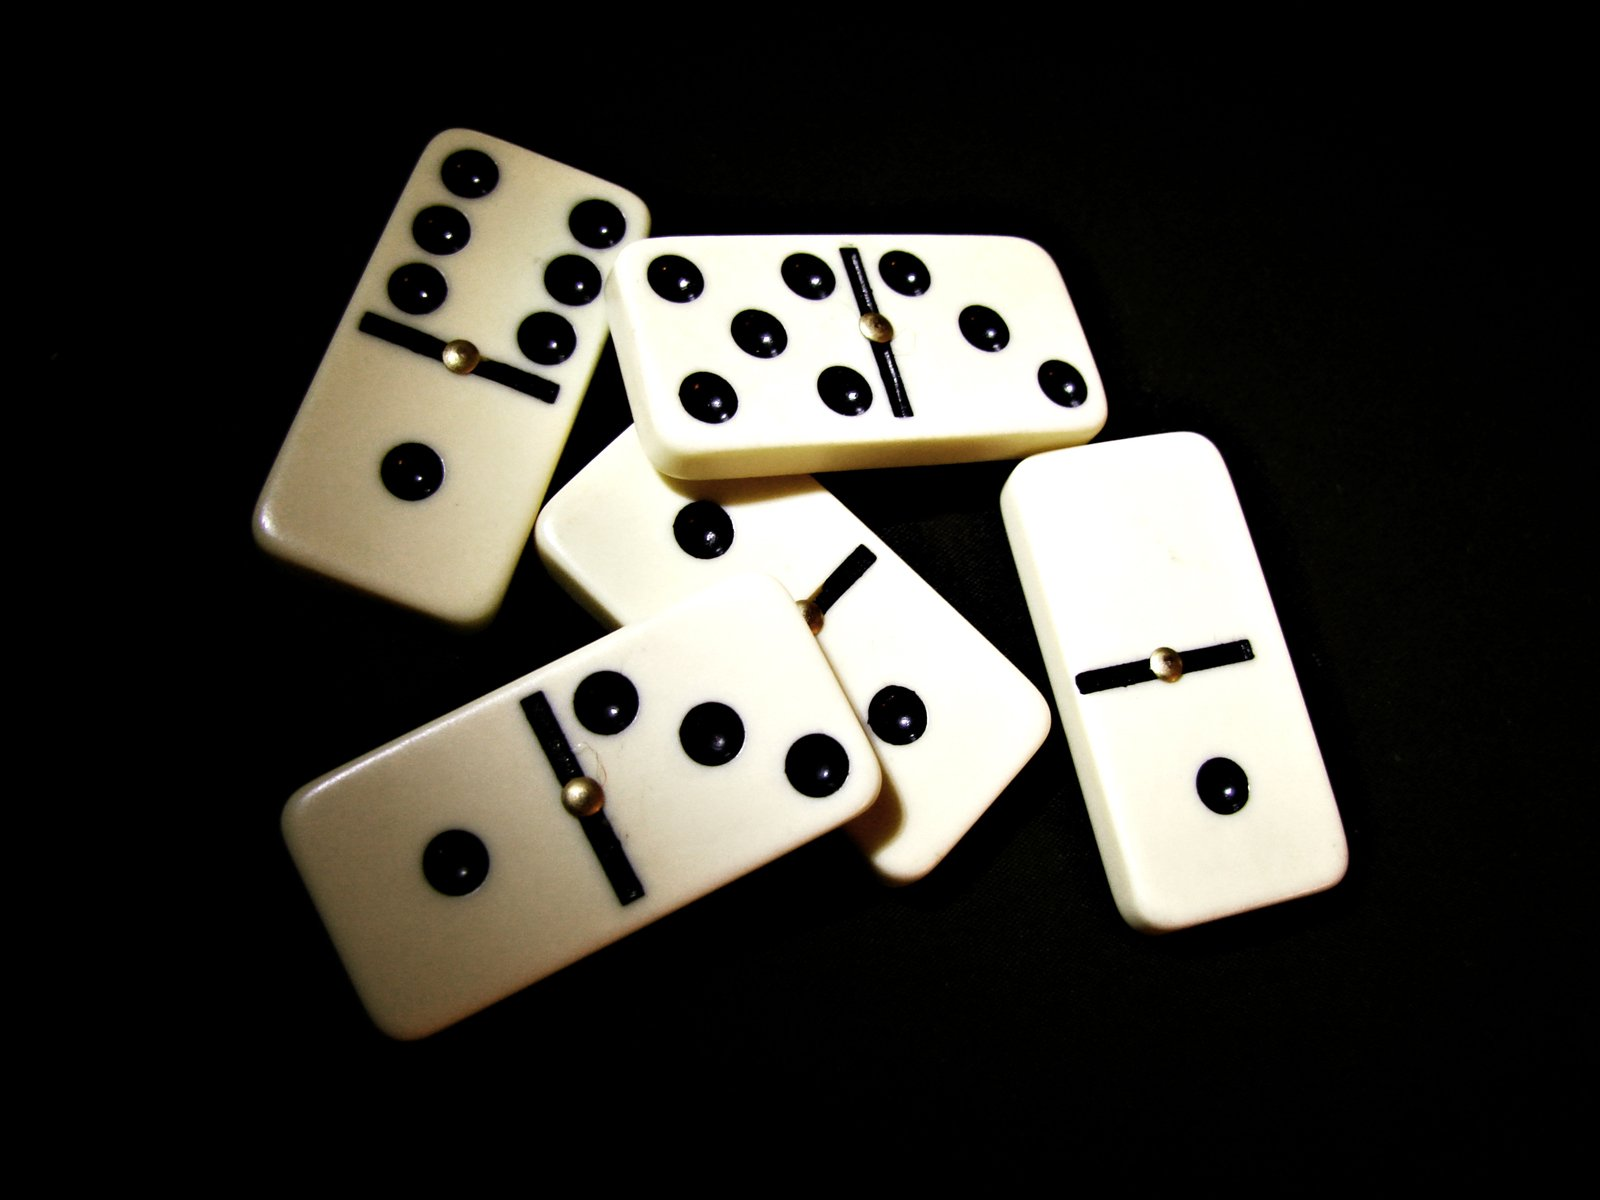 Free domino Stock Photo - FreeImages.com